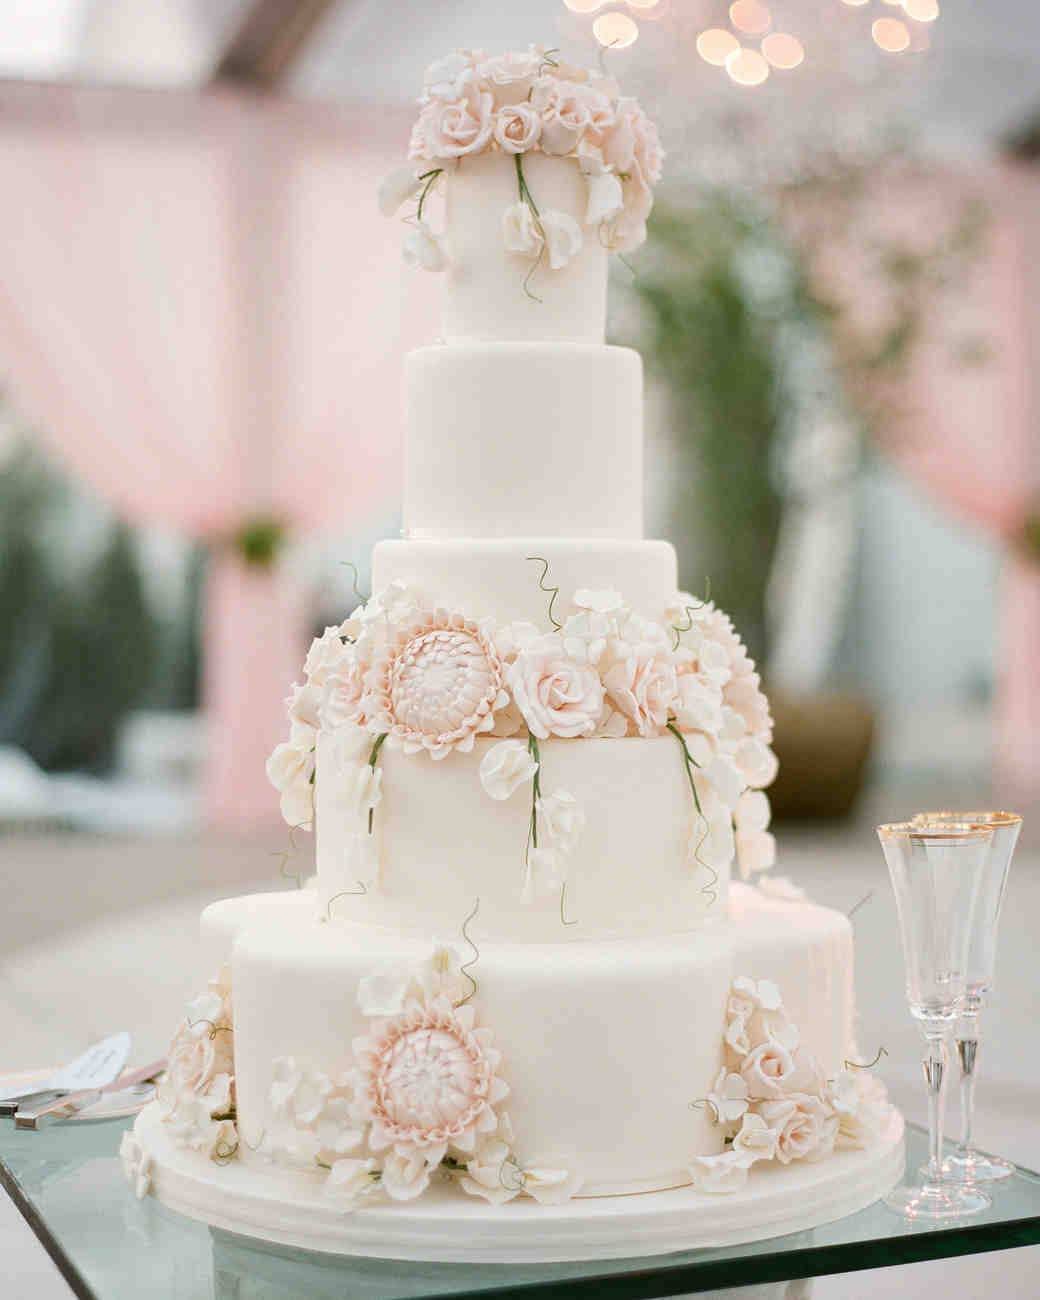 Wedding Cakes Photos  7 Delicious Vegan Wedding Cakes